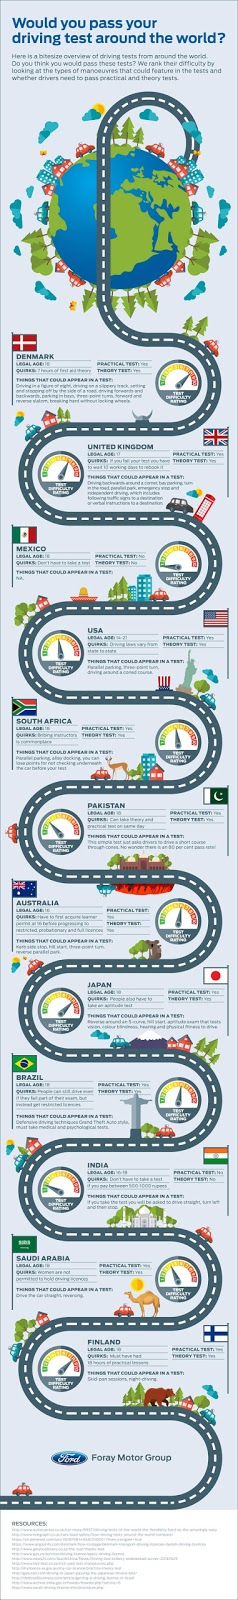 Would you pass your driving test around the world